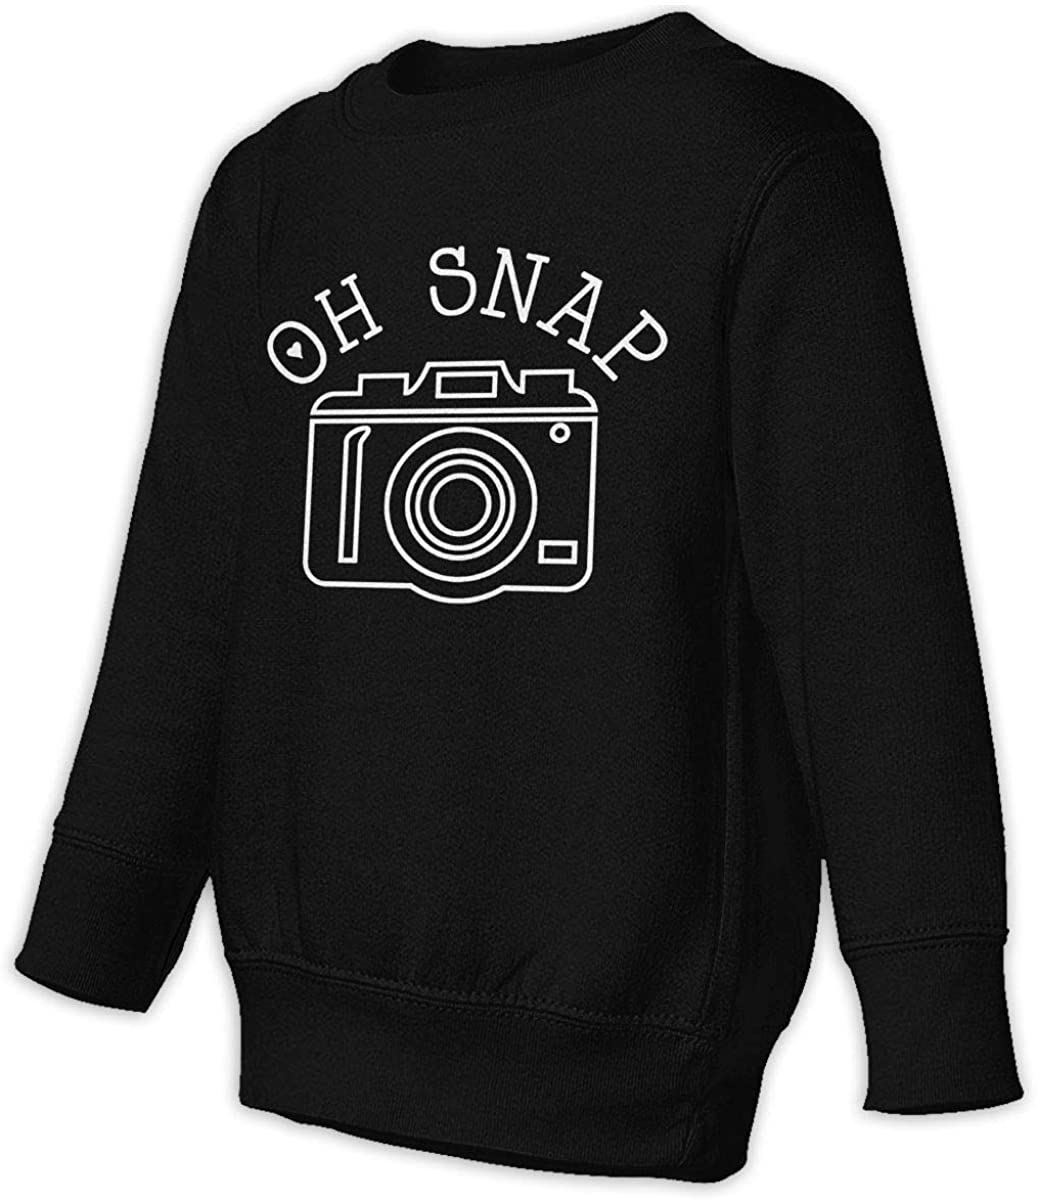 Oh Snap Camera Boys Girls Pullover Sweaters Crewneck Sweatshirts Clothes for 2-6 Years Old Children